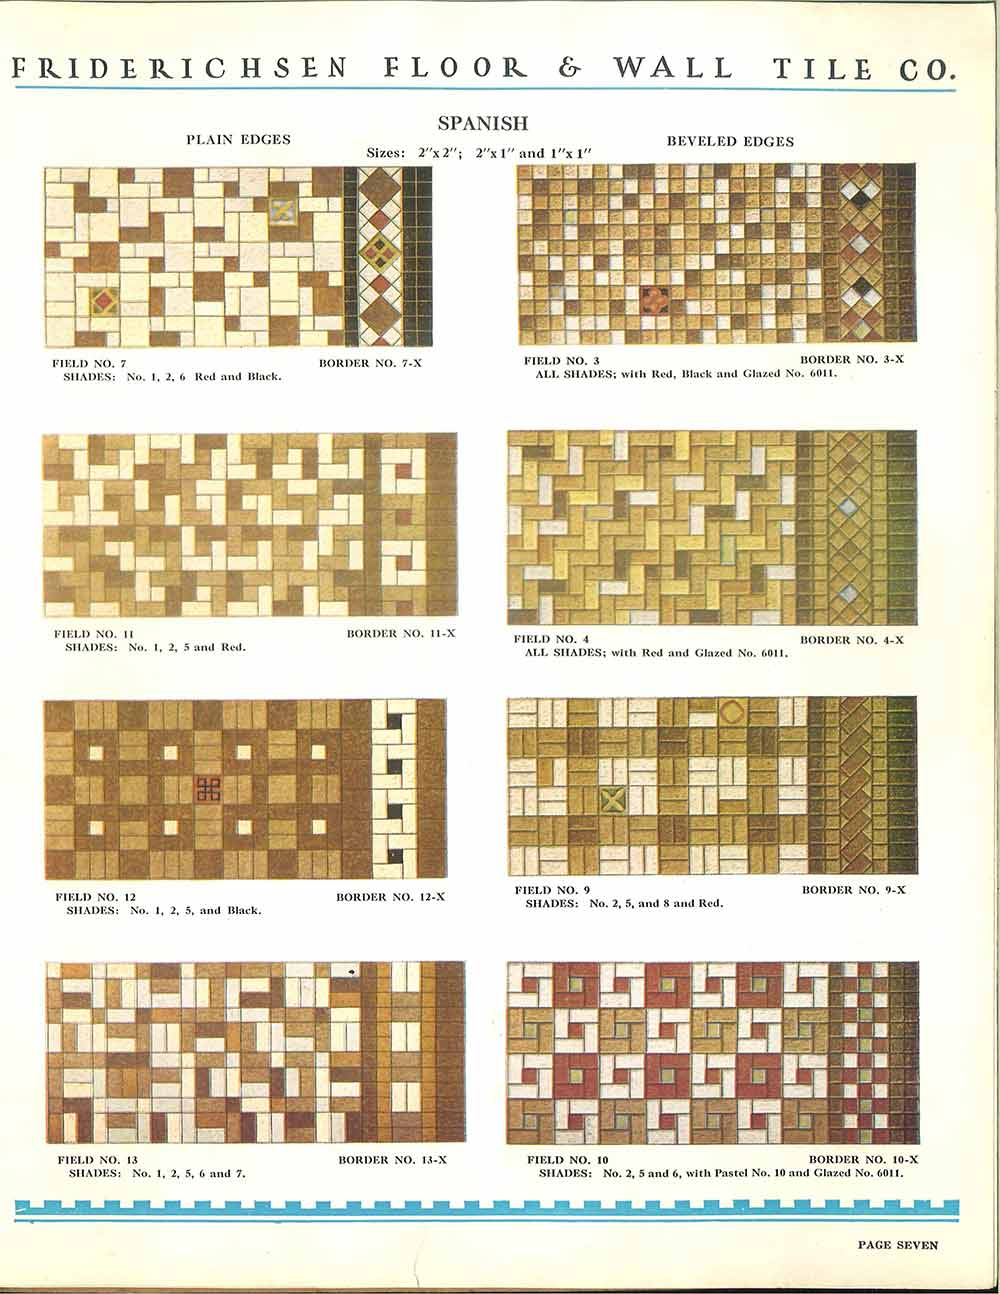 112 patterns of mosaic floor tile in amazing colors vintage ceramic floor patterns for ceramic tile 1930s dailygadgetfo Images